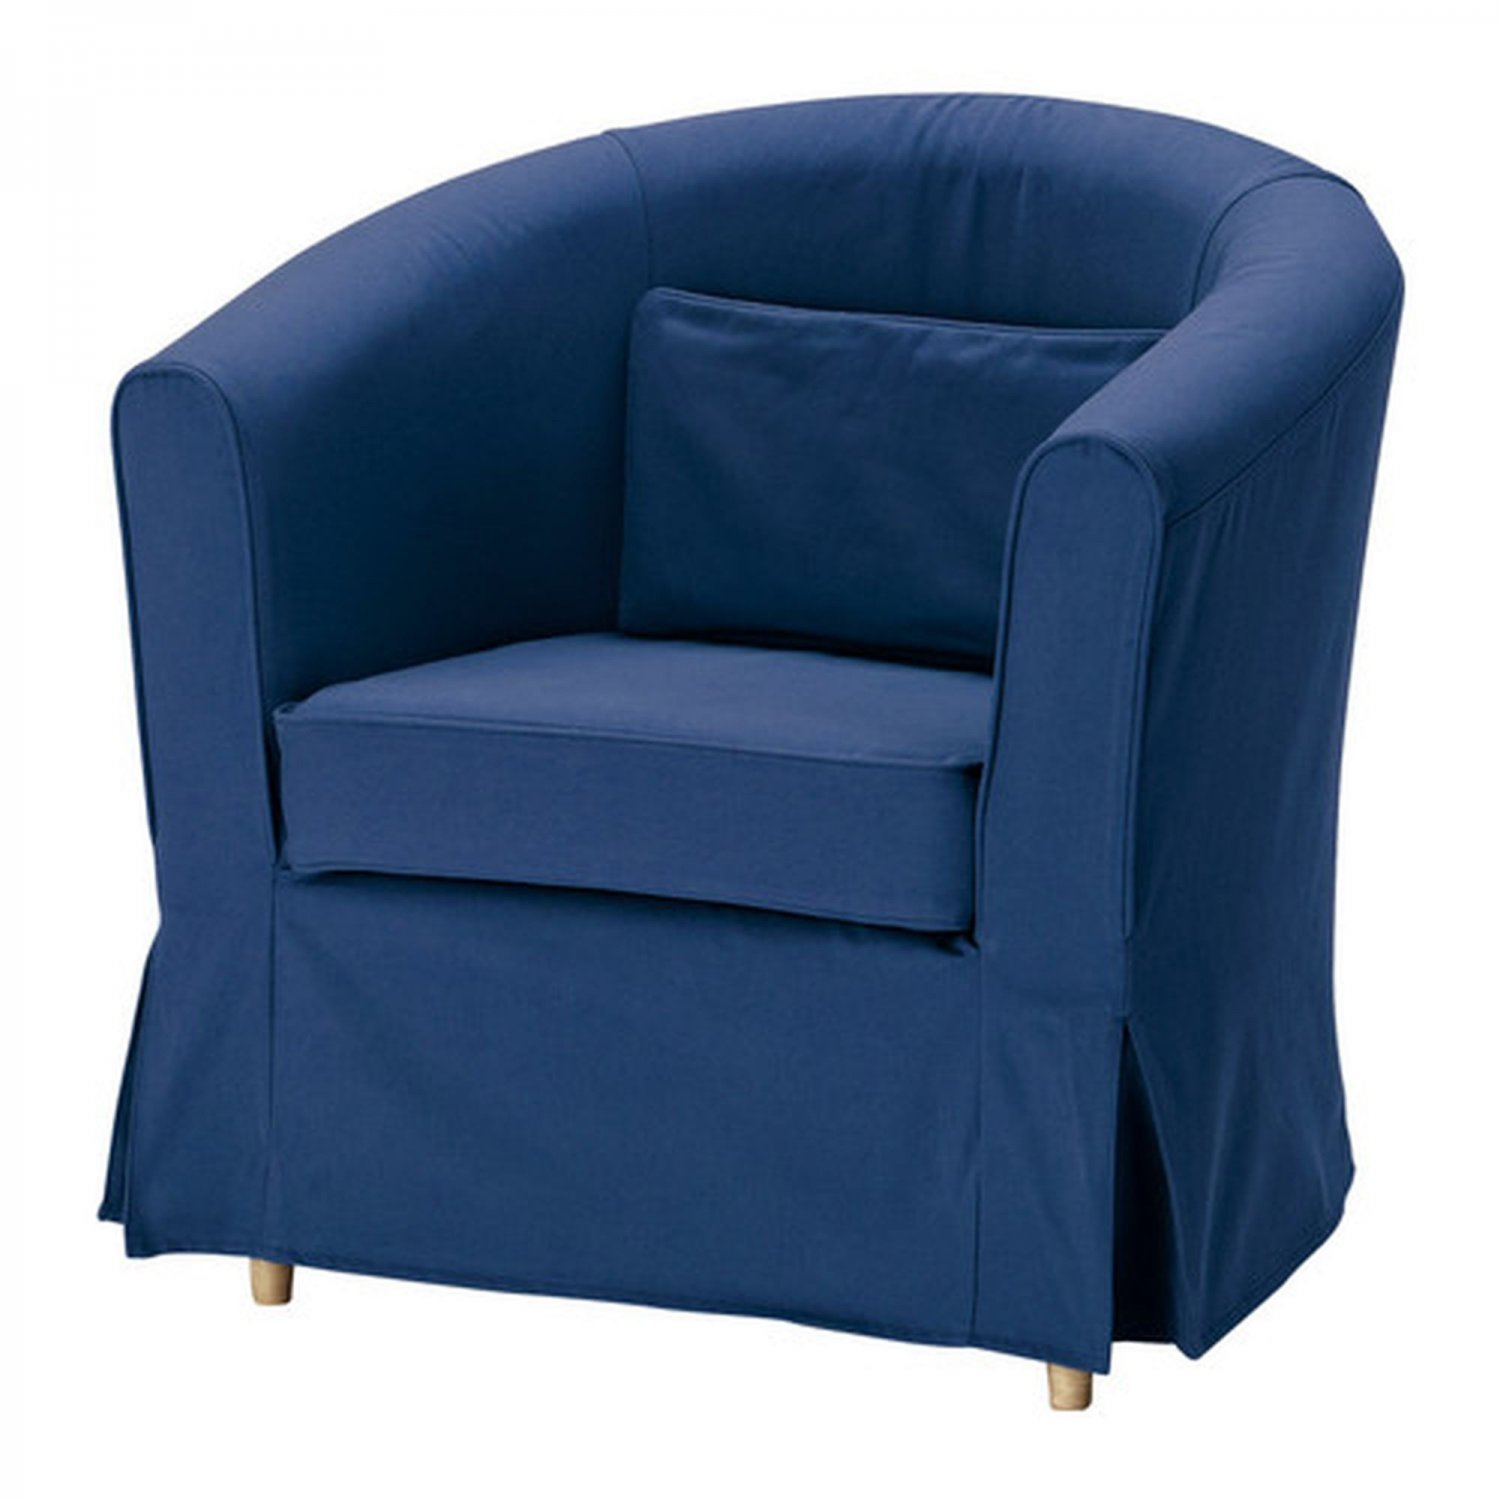 ikea ektorp tullsta armchair slipcover chair cover idemo blue bezug. Black Bedroom Furniture Sets. Home Design Ideas